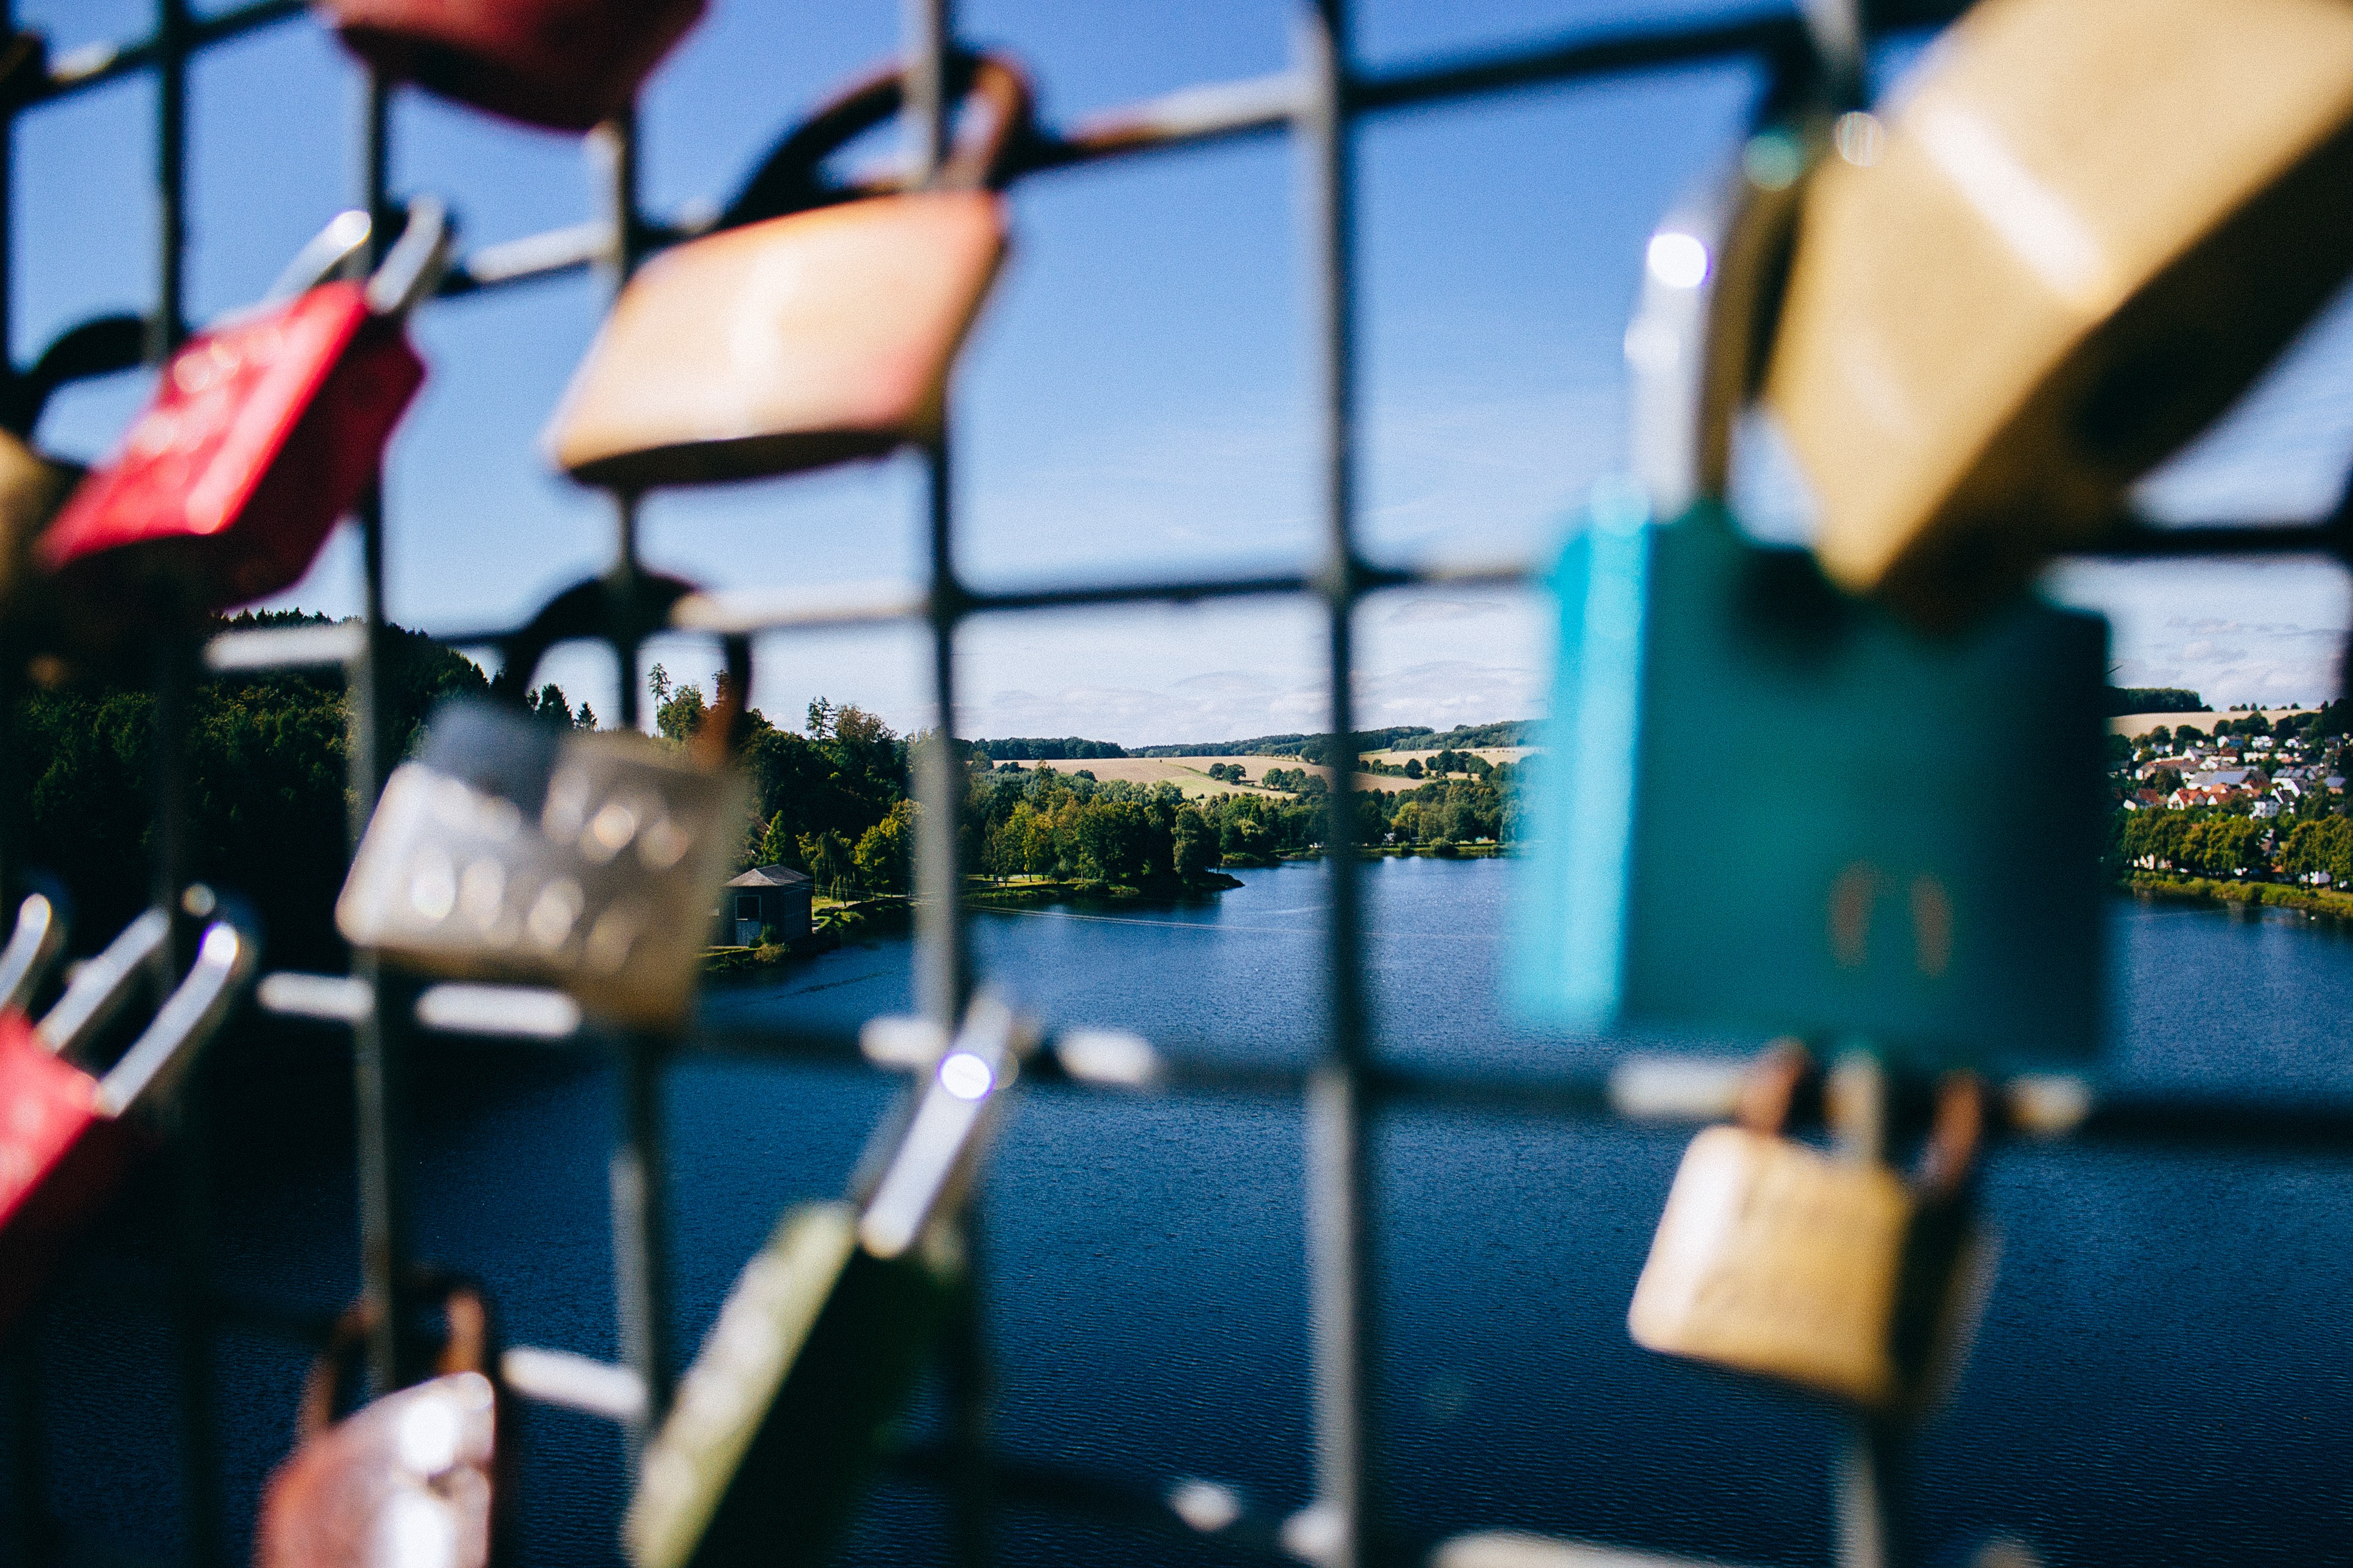 Locks on a metal fence overlooking a lake